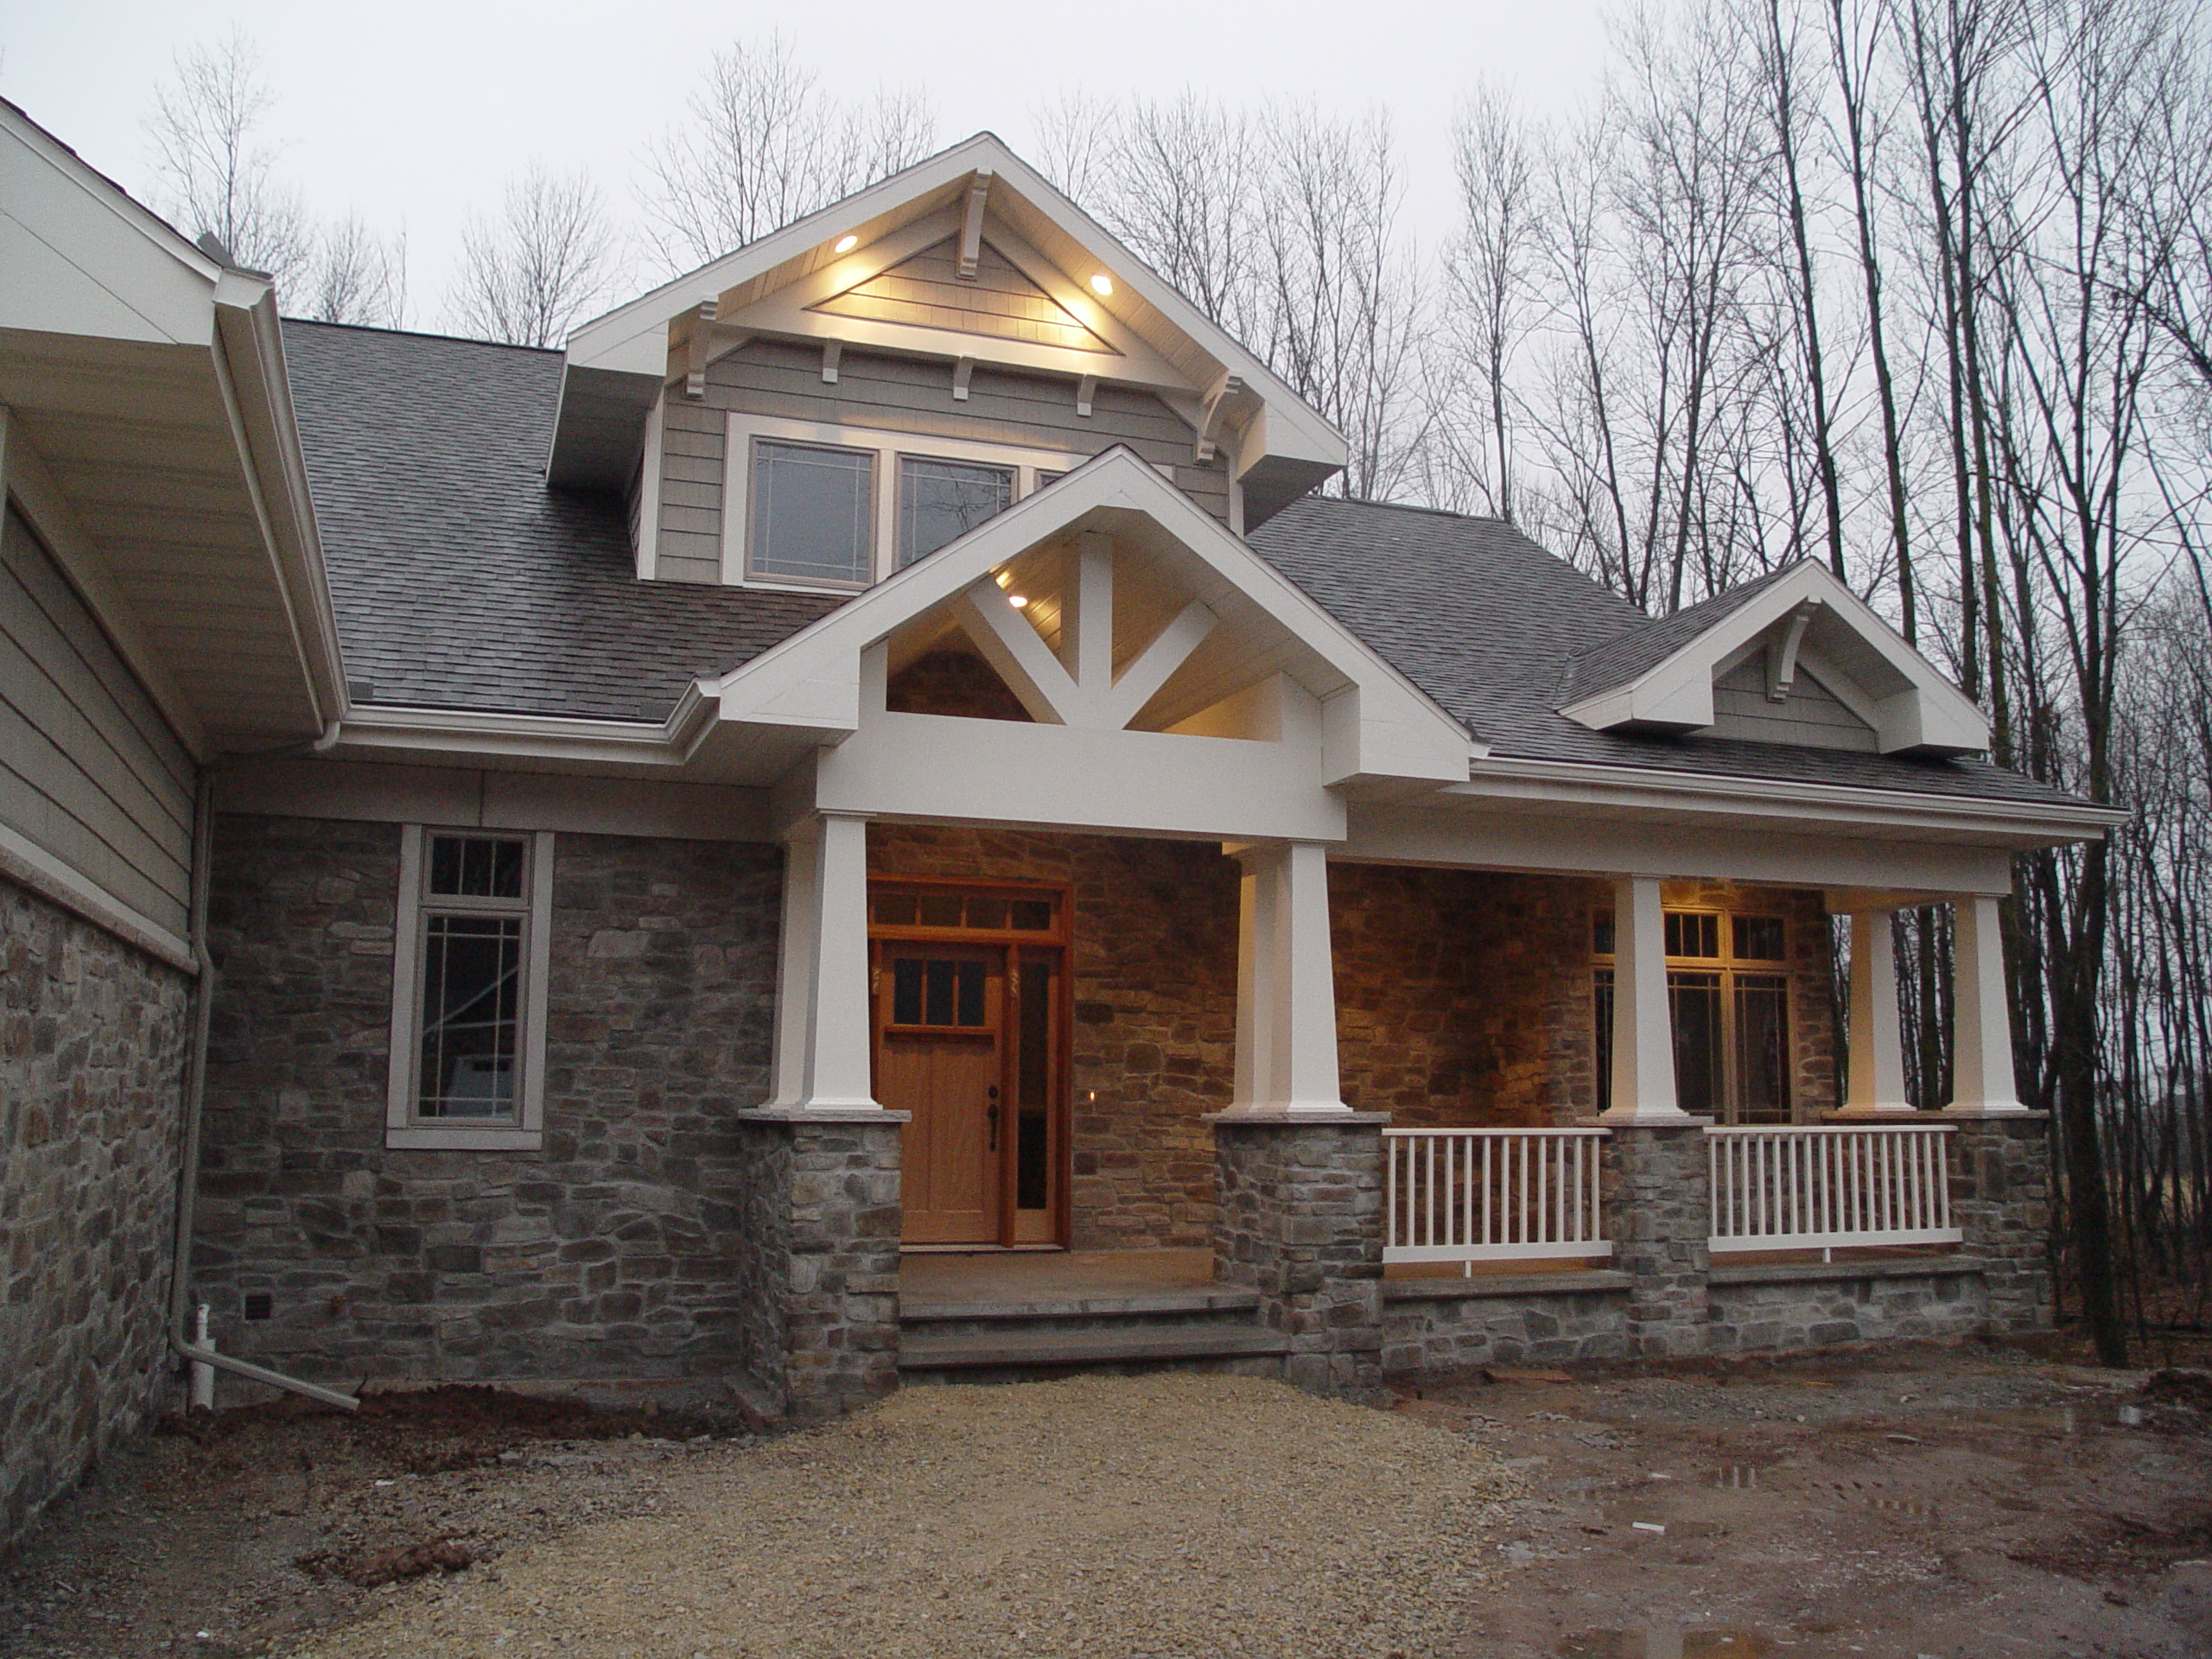 Dressing up the exterior with gable details katie jane Craftsman style gables